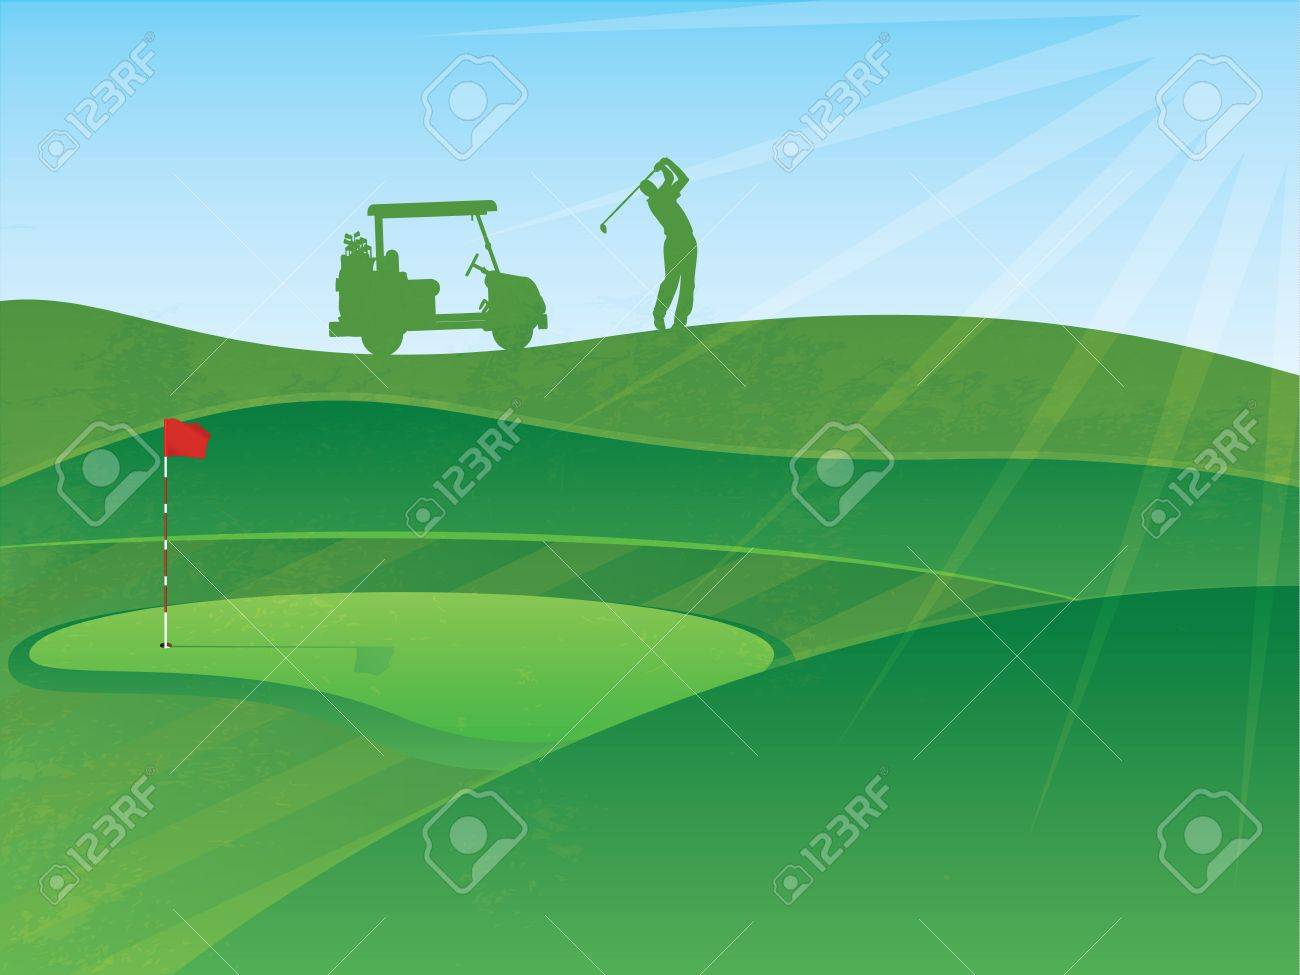 Golf Course Hills Background with a Golfer and Cart in the Distance - 15632591